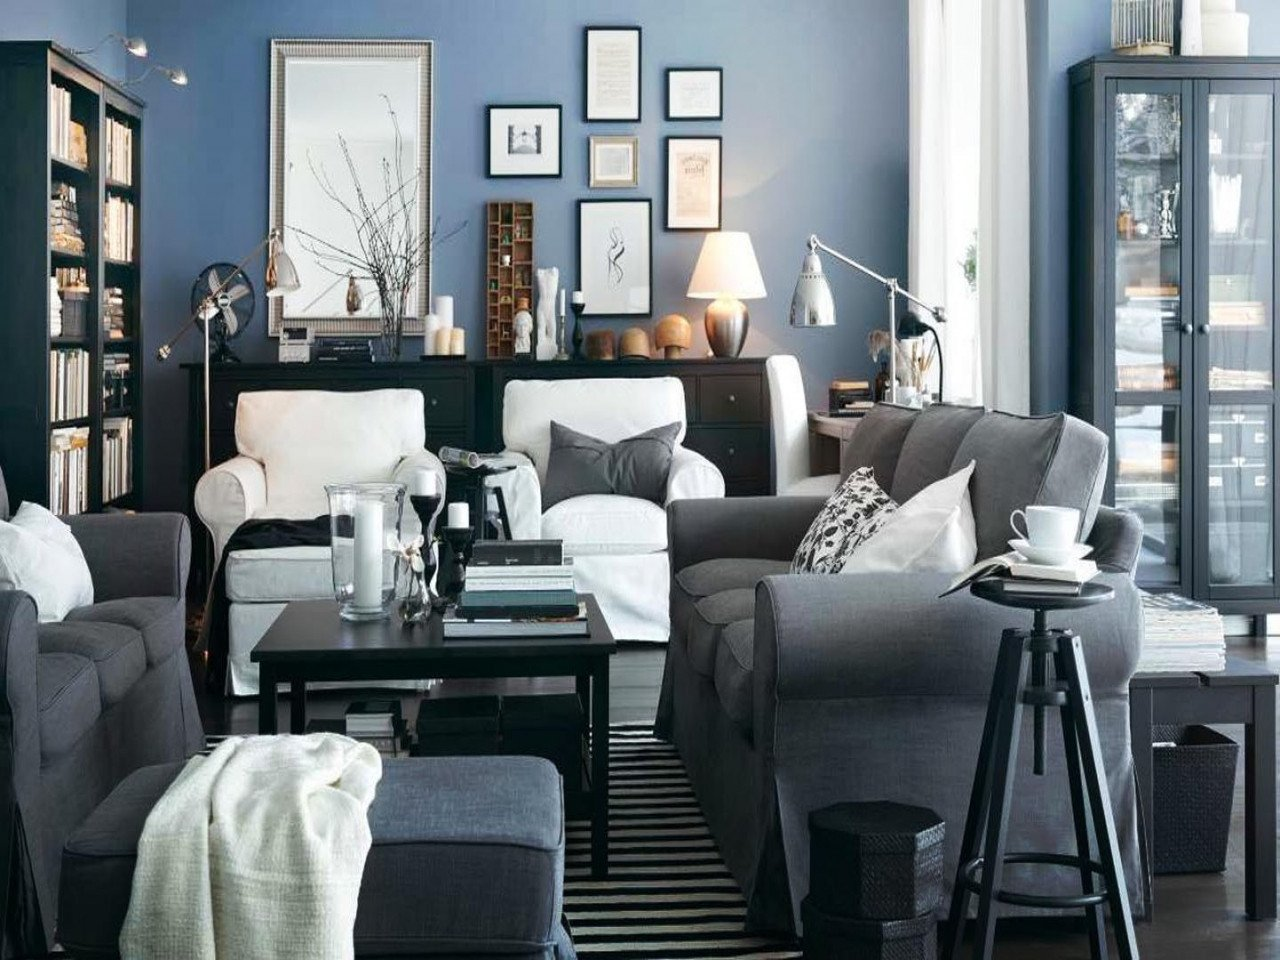 Comfortable Living Roomdecorating Ideas Elegant Peach Colour On Sitting Room Wall fortable Living Room Decorating Ideas Living Room Terrific